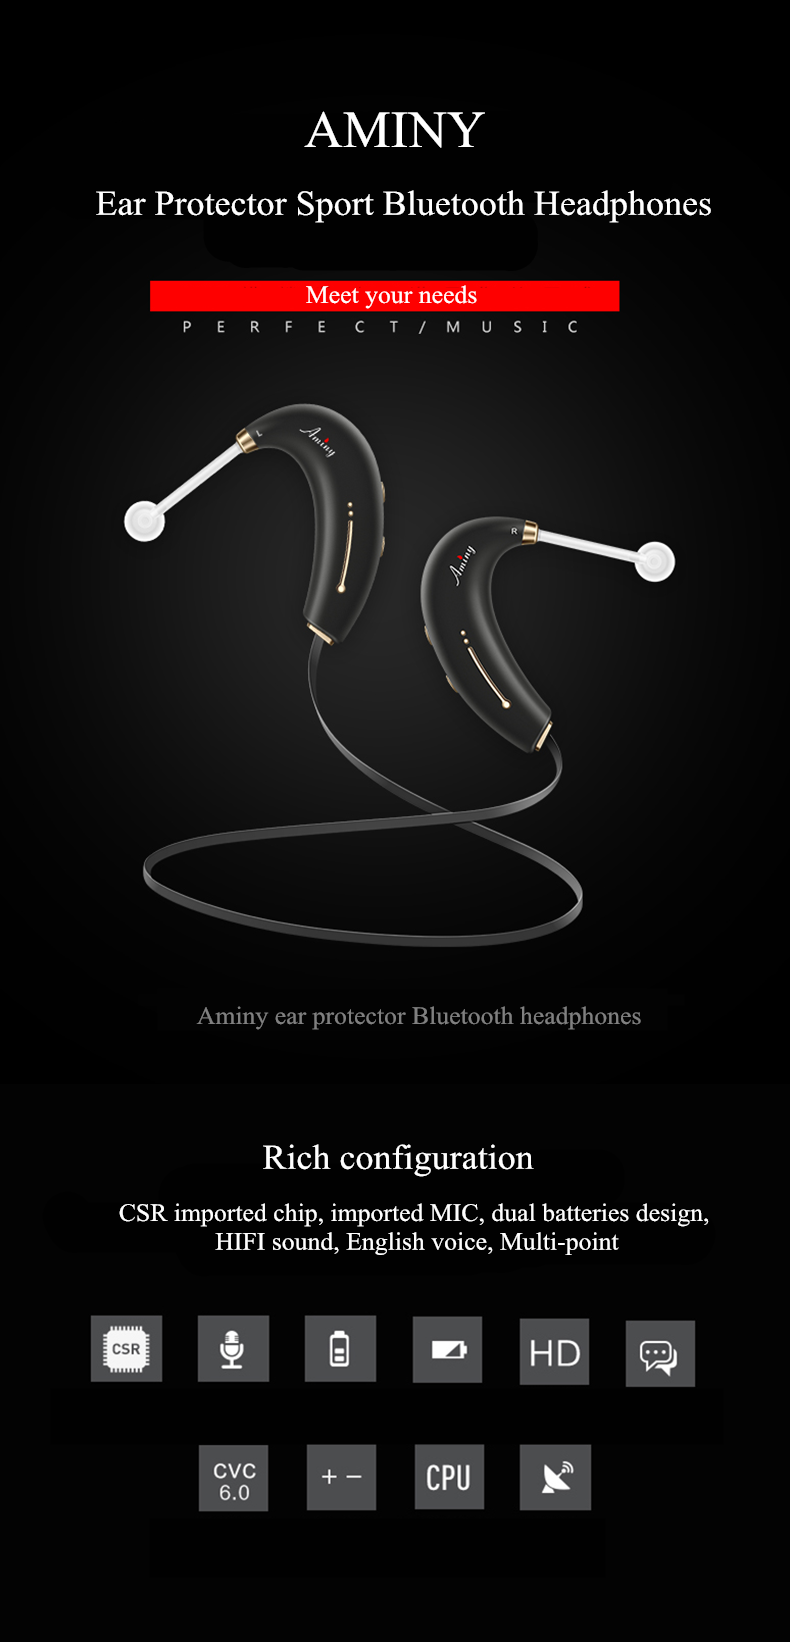 AMINY Ear Protector Sports Wireless Bluetooth 4.1 Earphones with mic